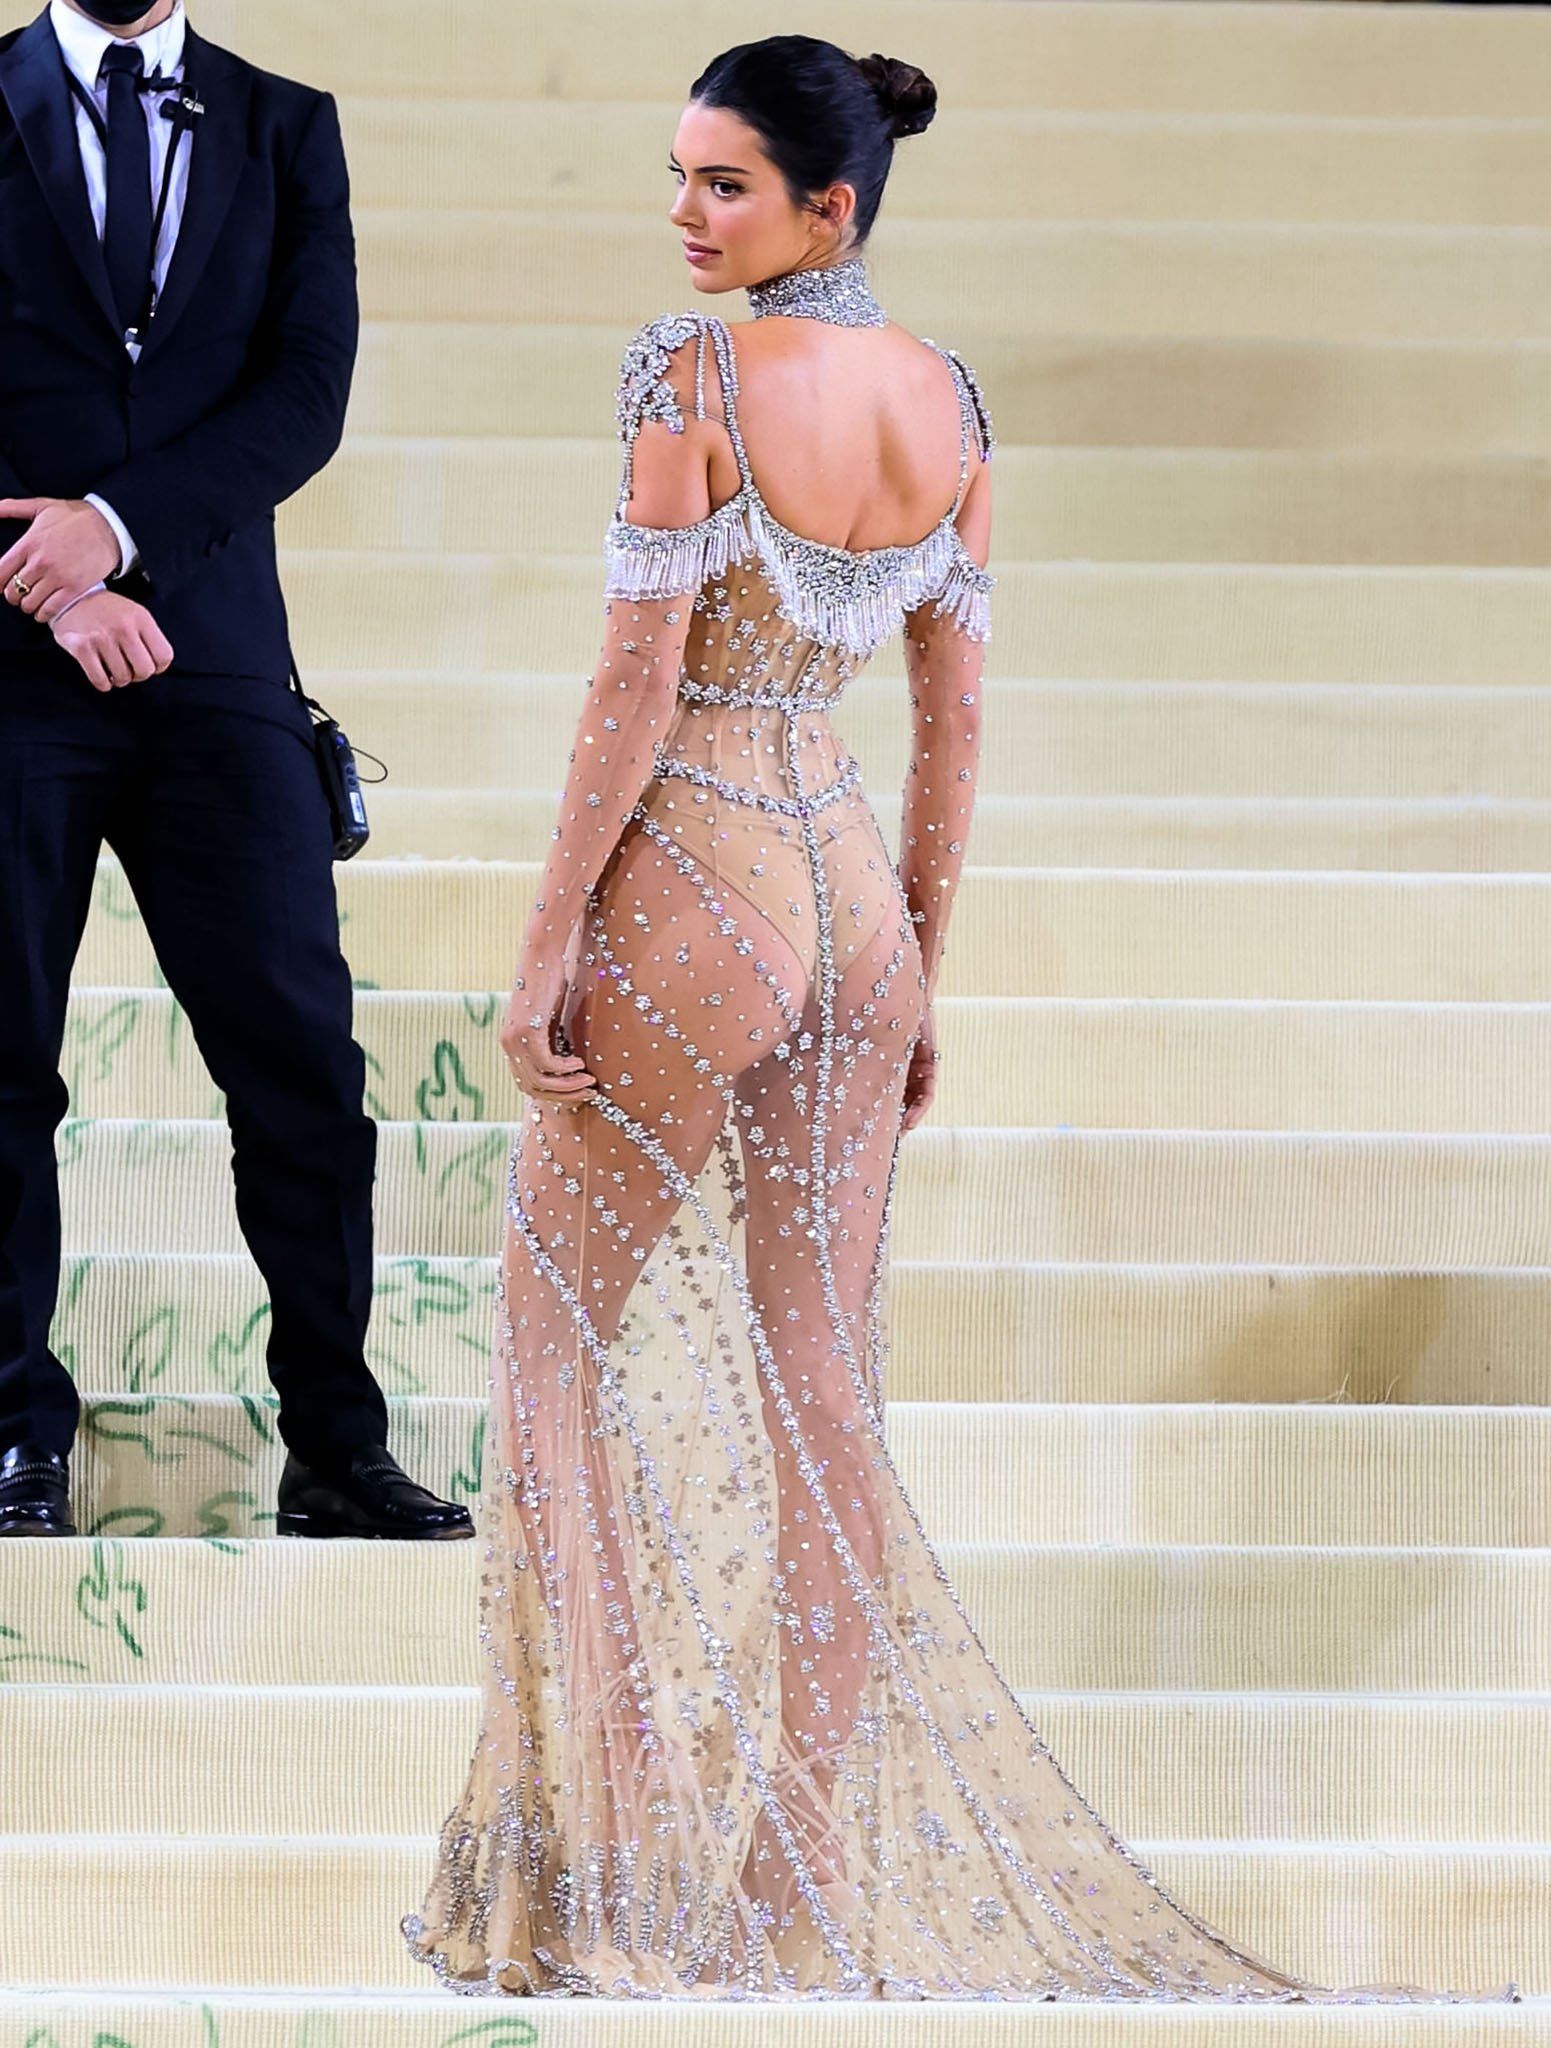 Kendall Jenner showcases her buttcheeks and long legs in Givenchy sheer nude mesh dress